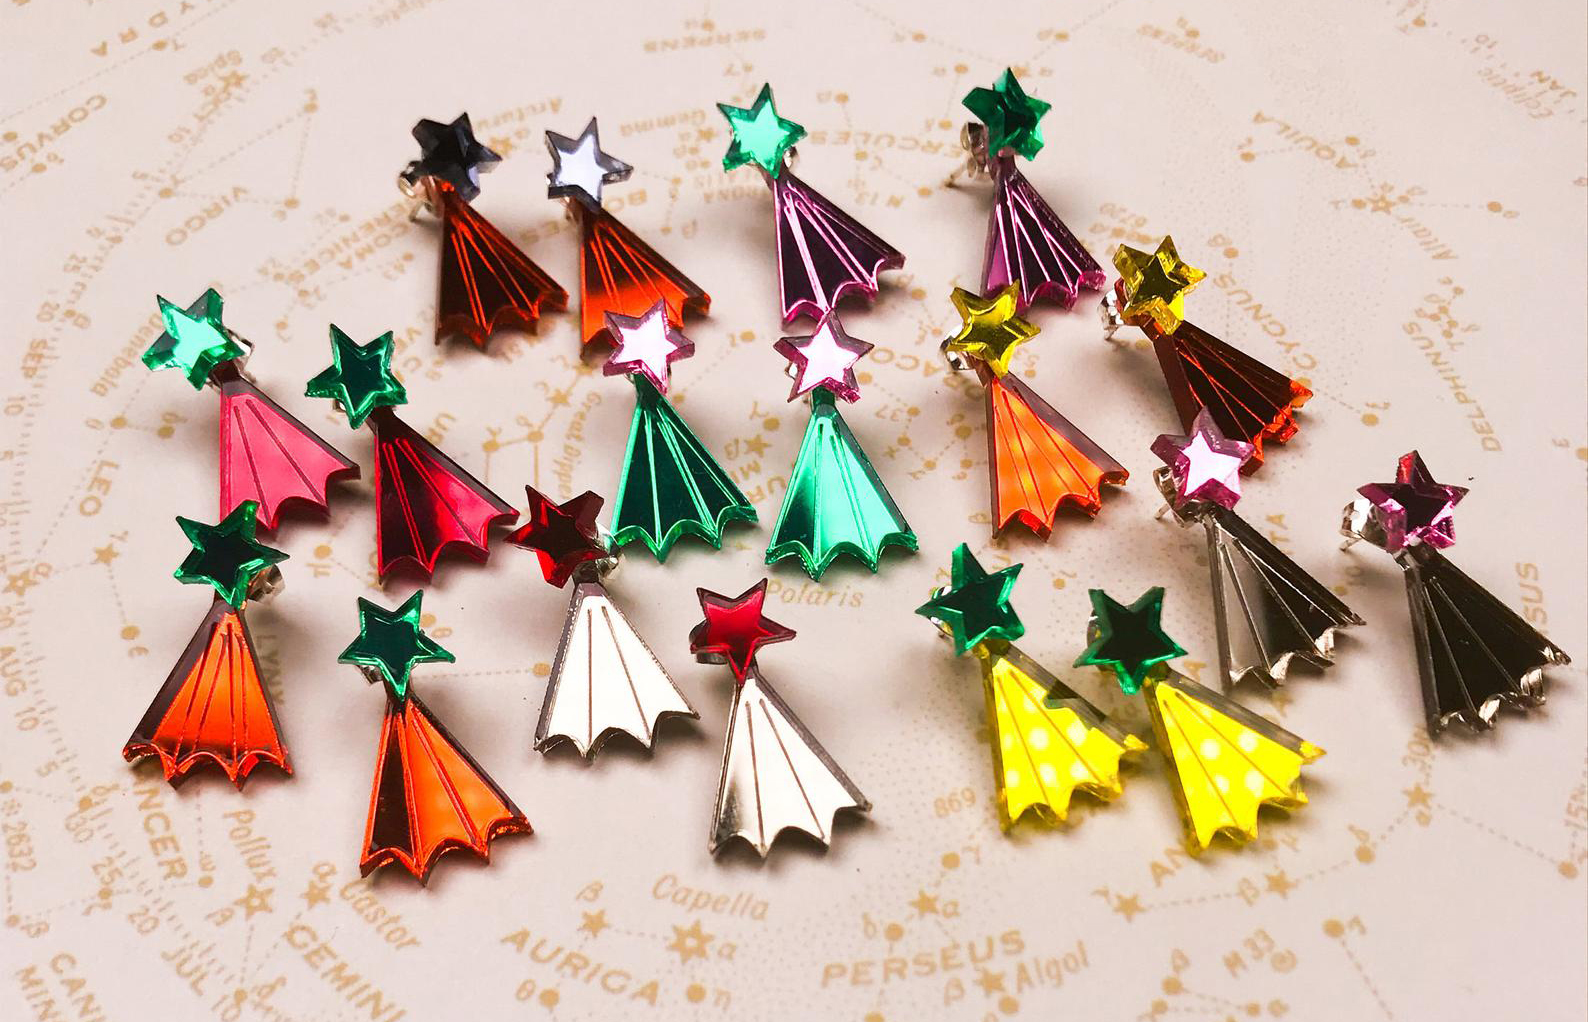 A selection of star shaped laser cut earrings made in Birmingham